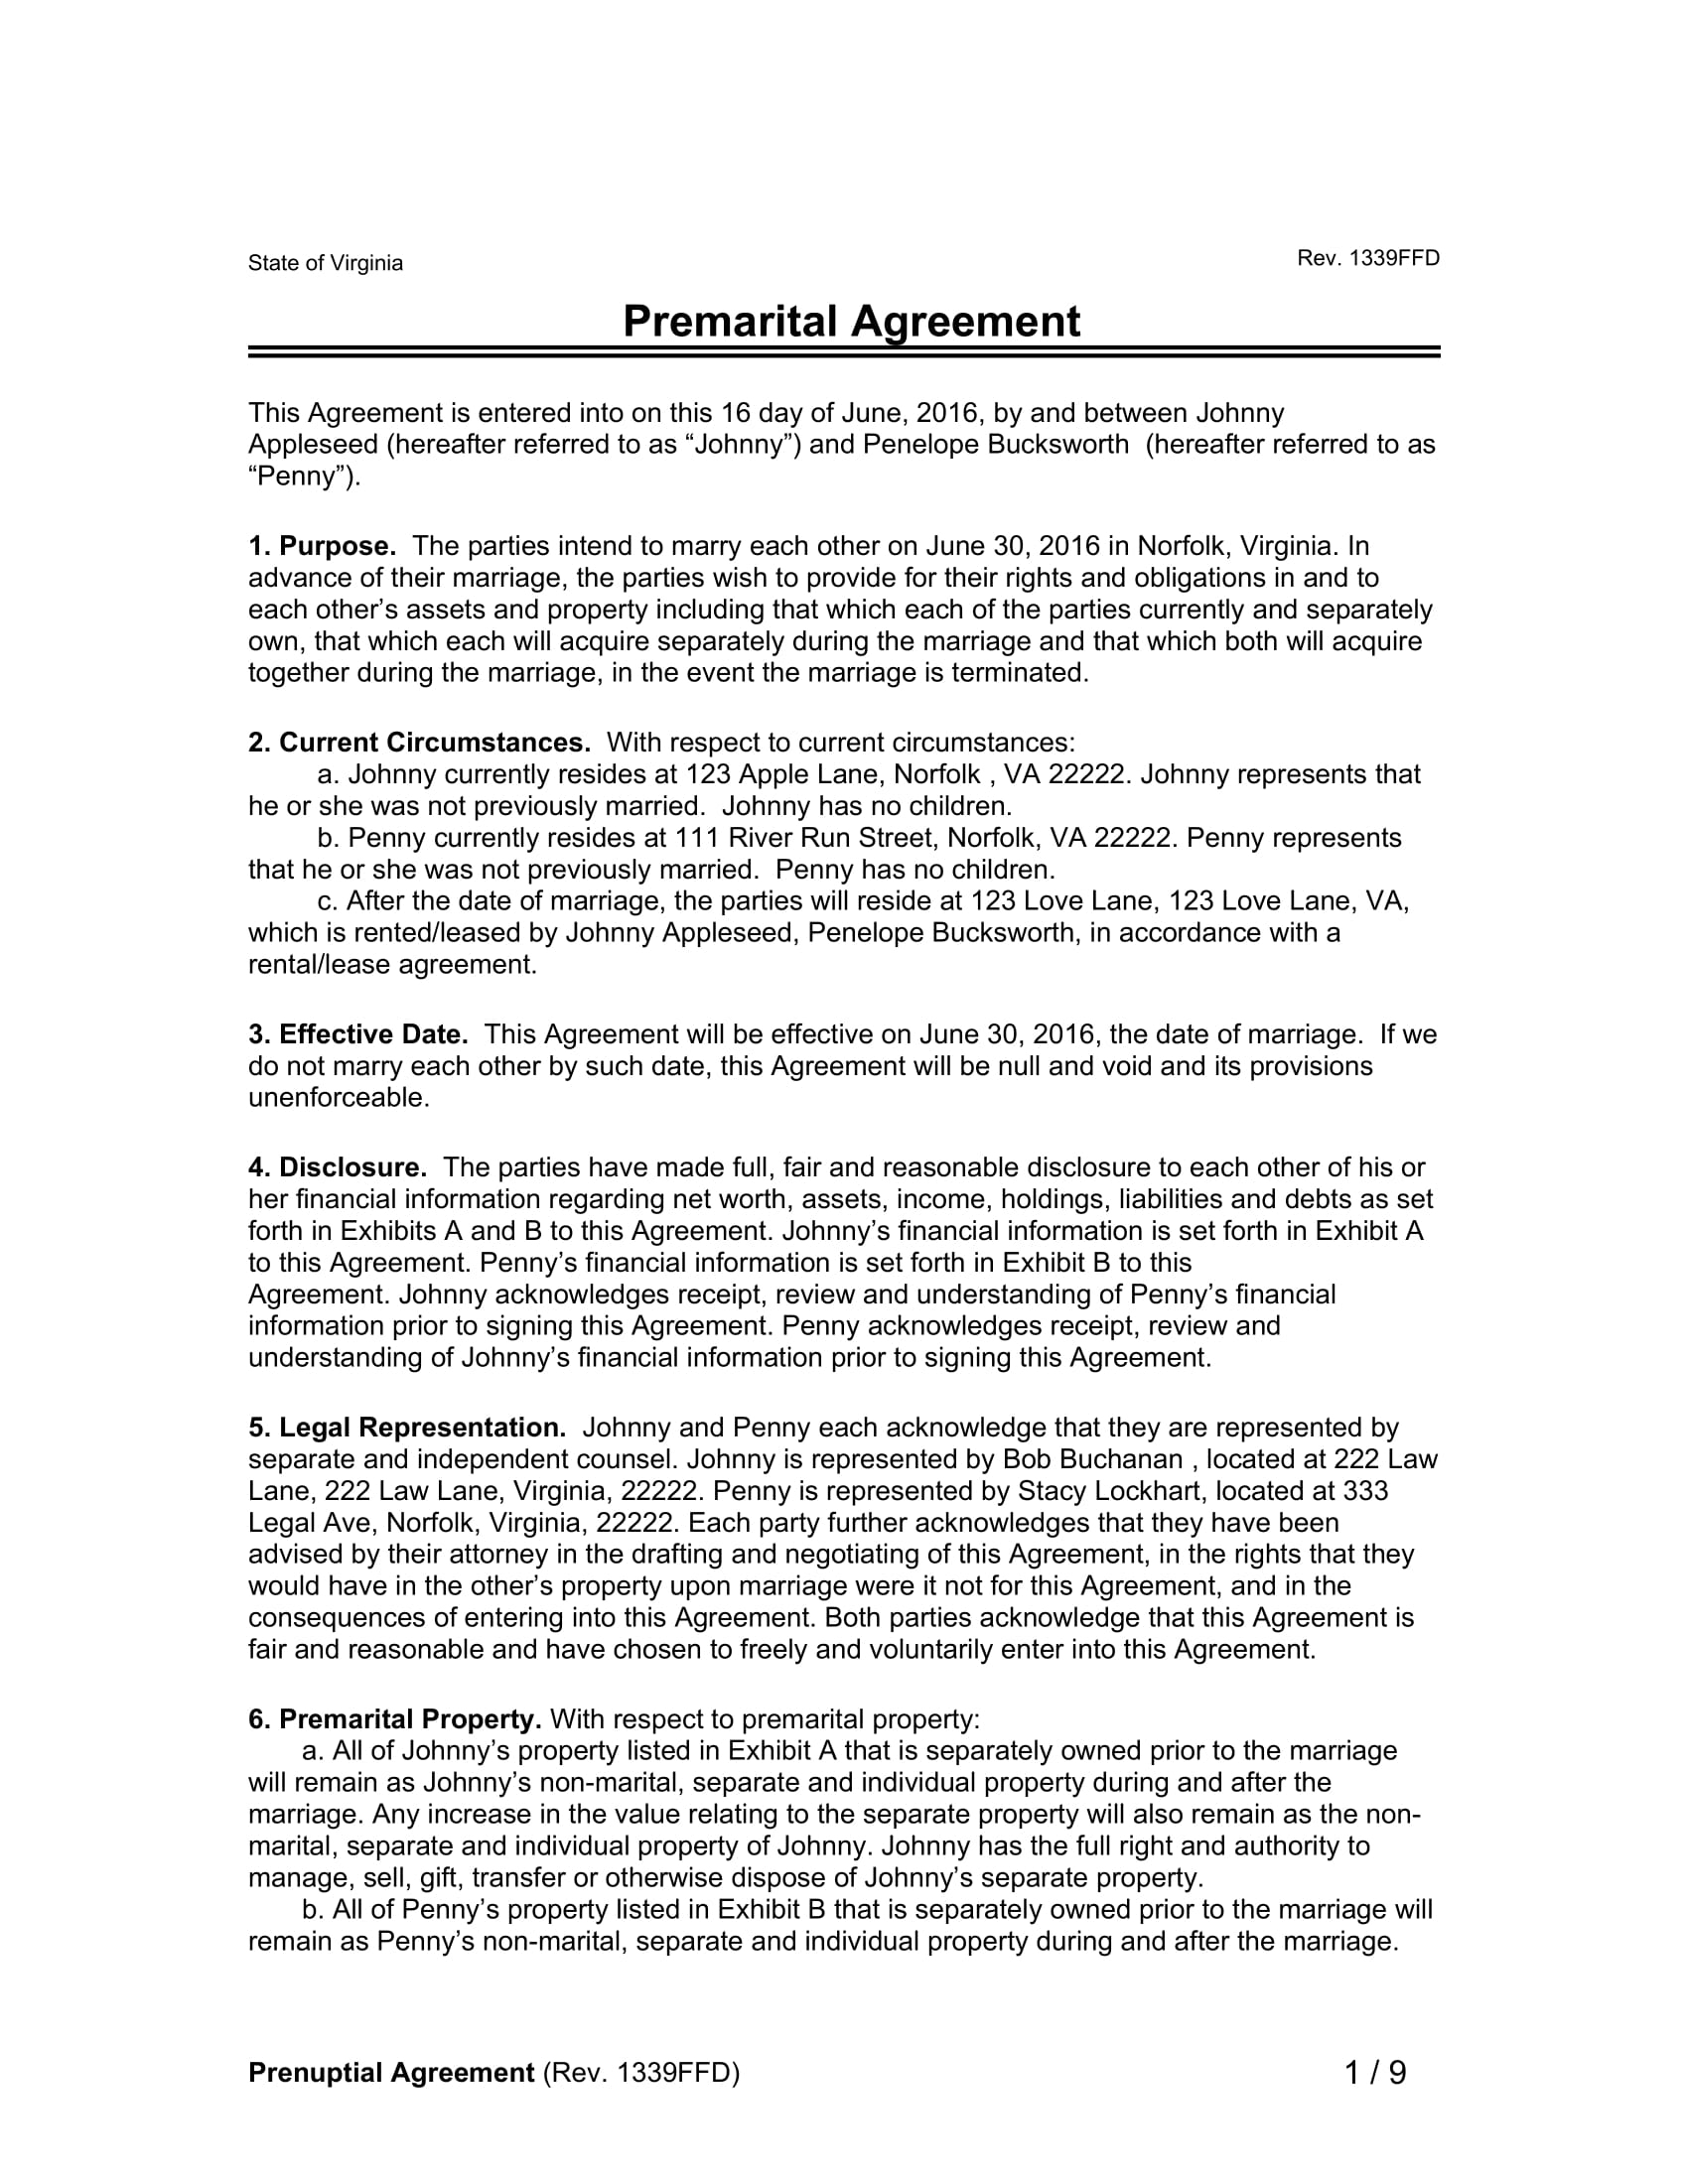 premarital agreement contract form 1